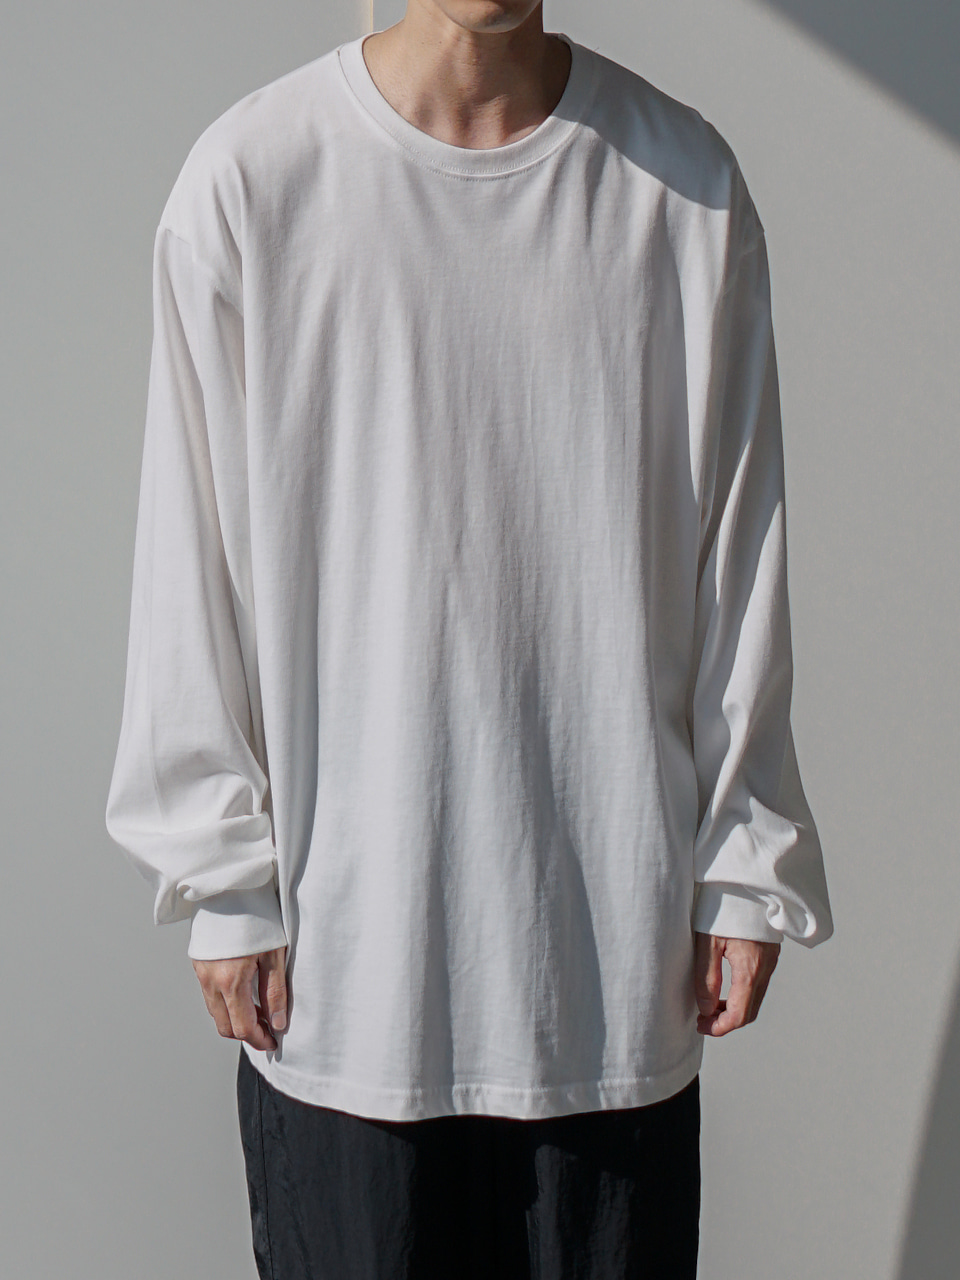 Then Relaxed Long Sleeve Tee (6color)